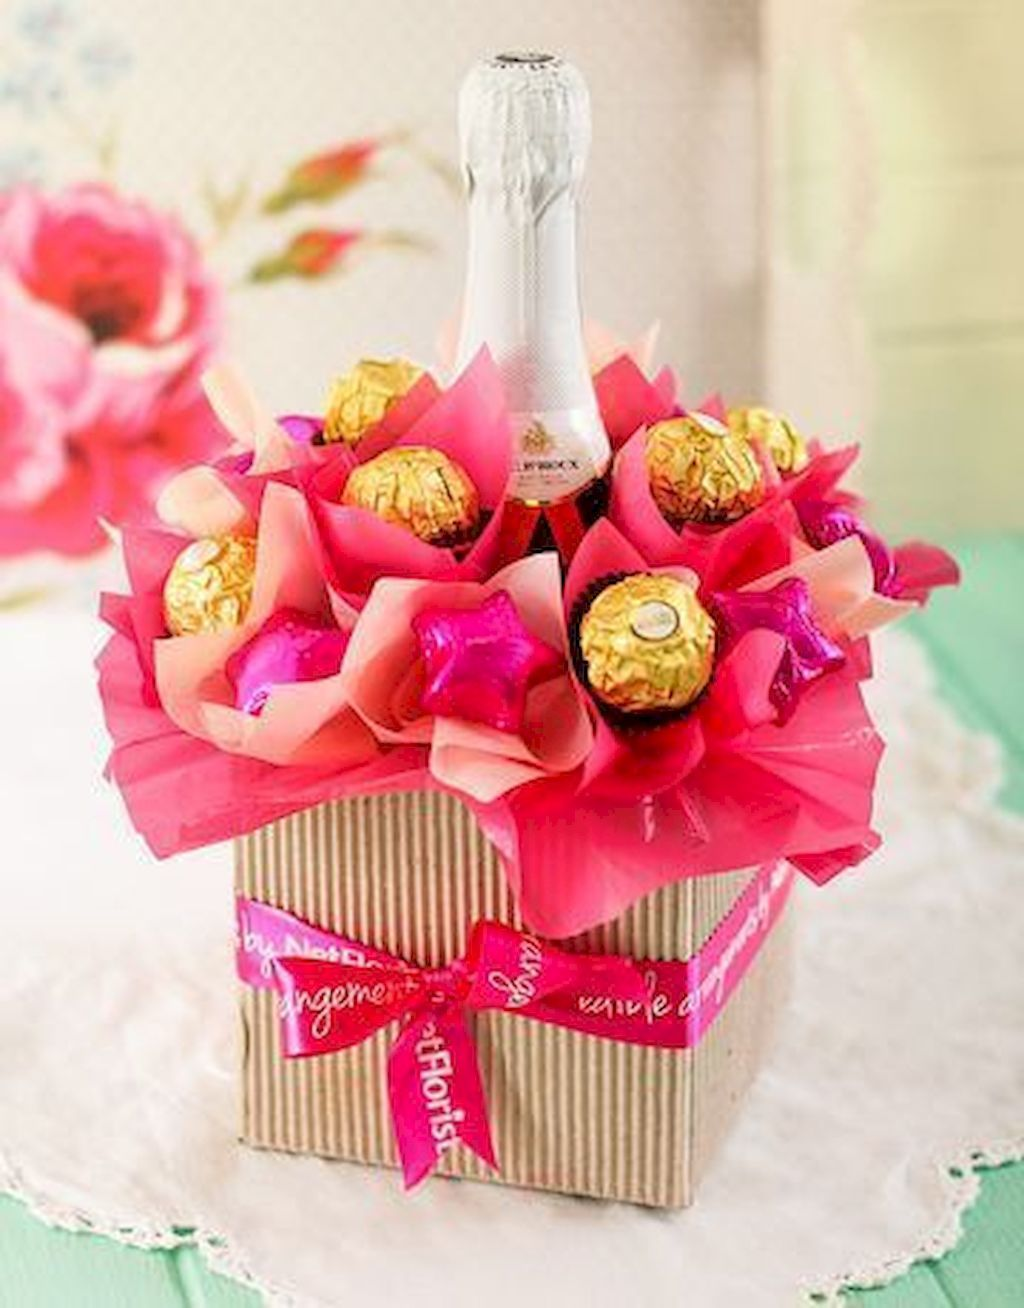 Glorious Best Tips On Valentine Gift Ideas In 2020 Gifts Valentine Gifts Diy Gifts